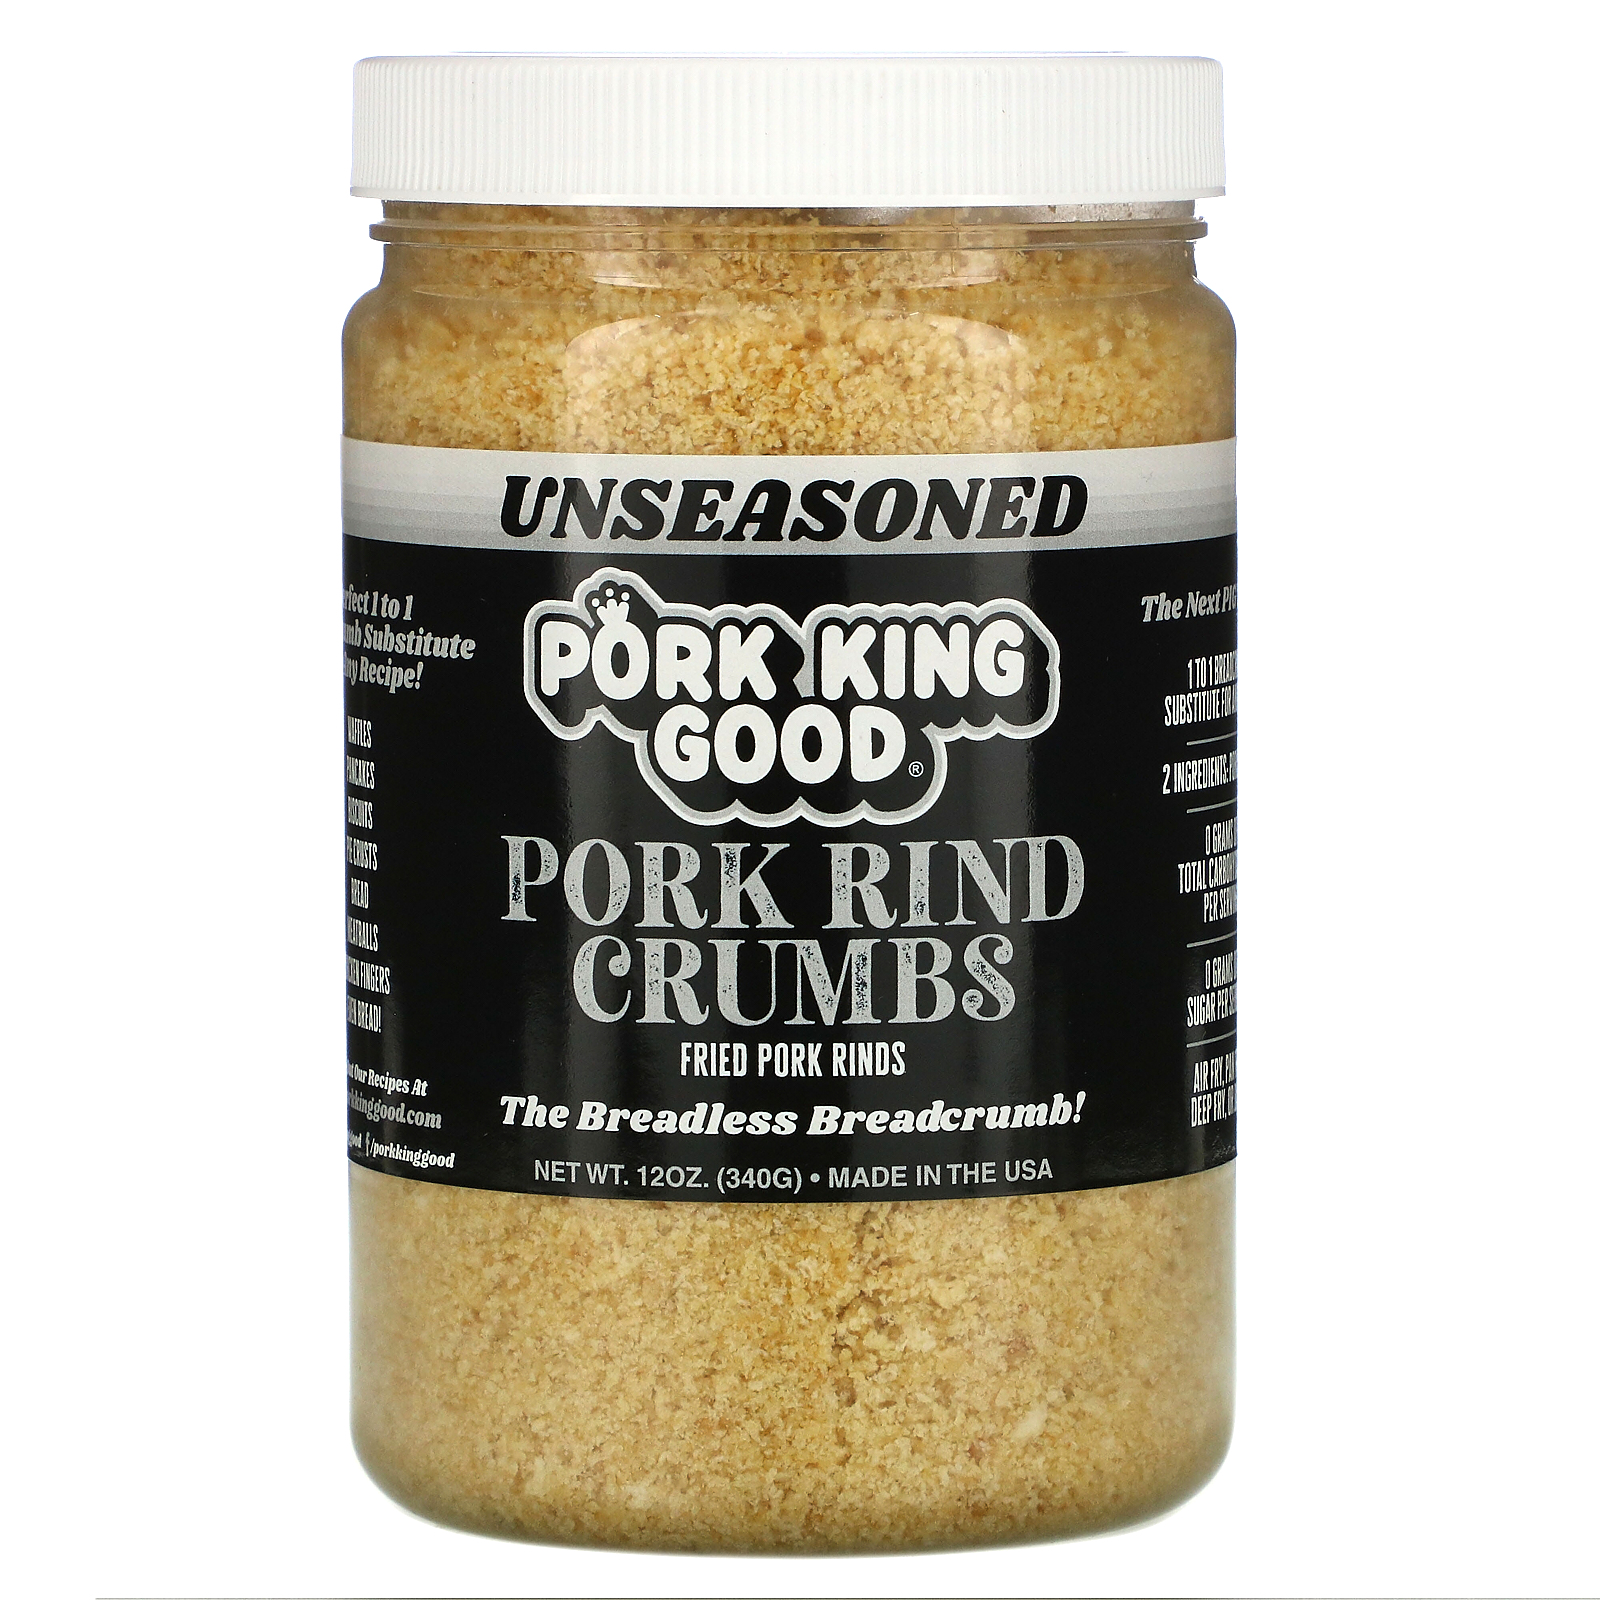 Pork King Good, Pork Rind Crumbs, Unseasoned, 12 oz (340 g)